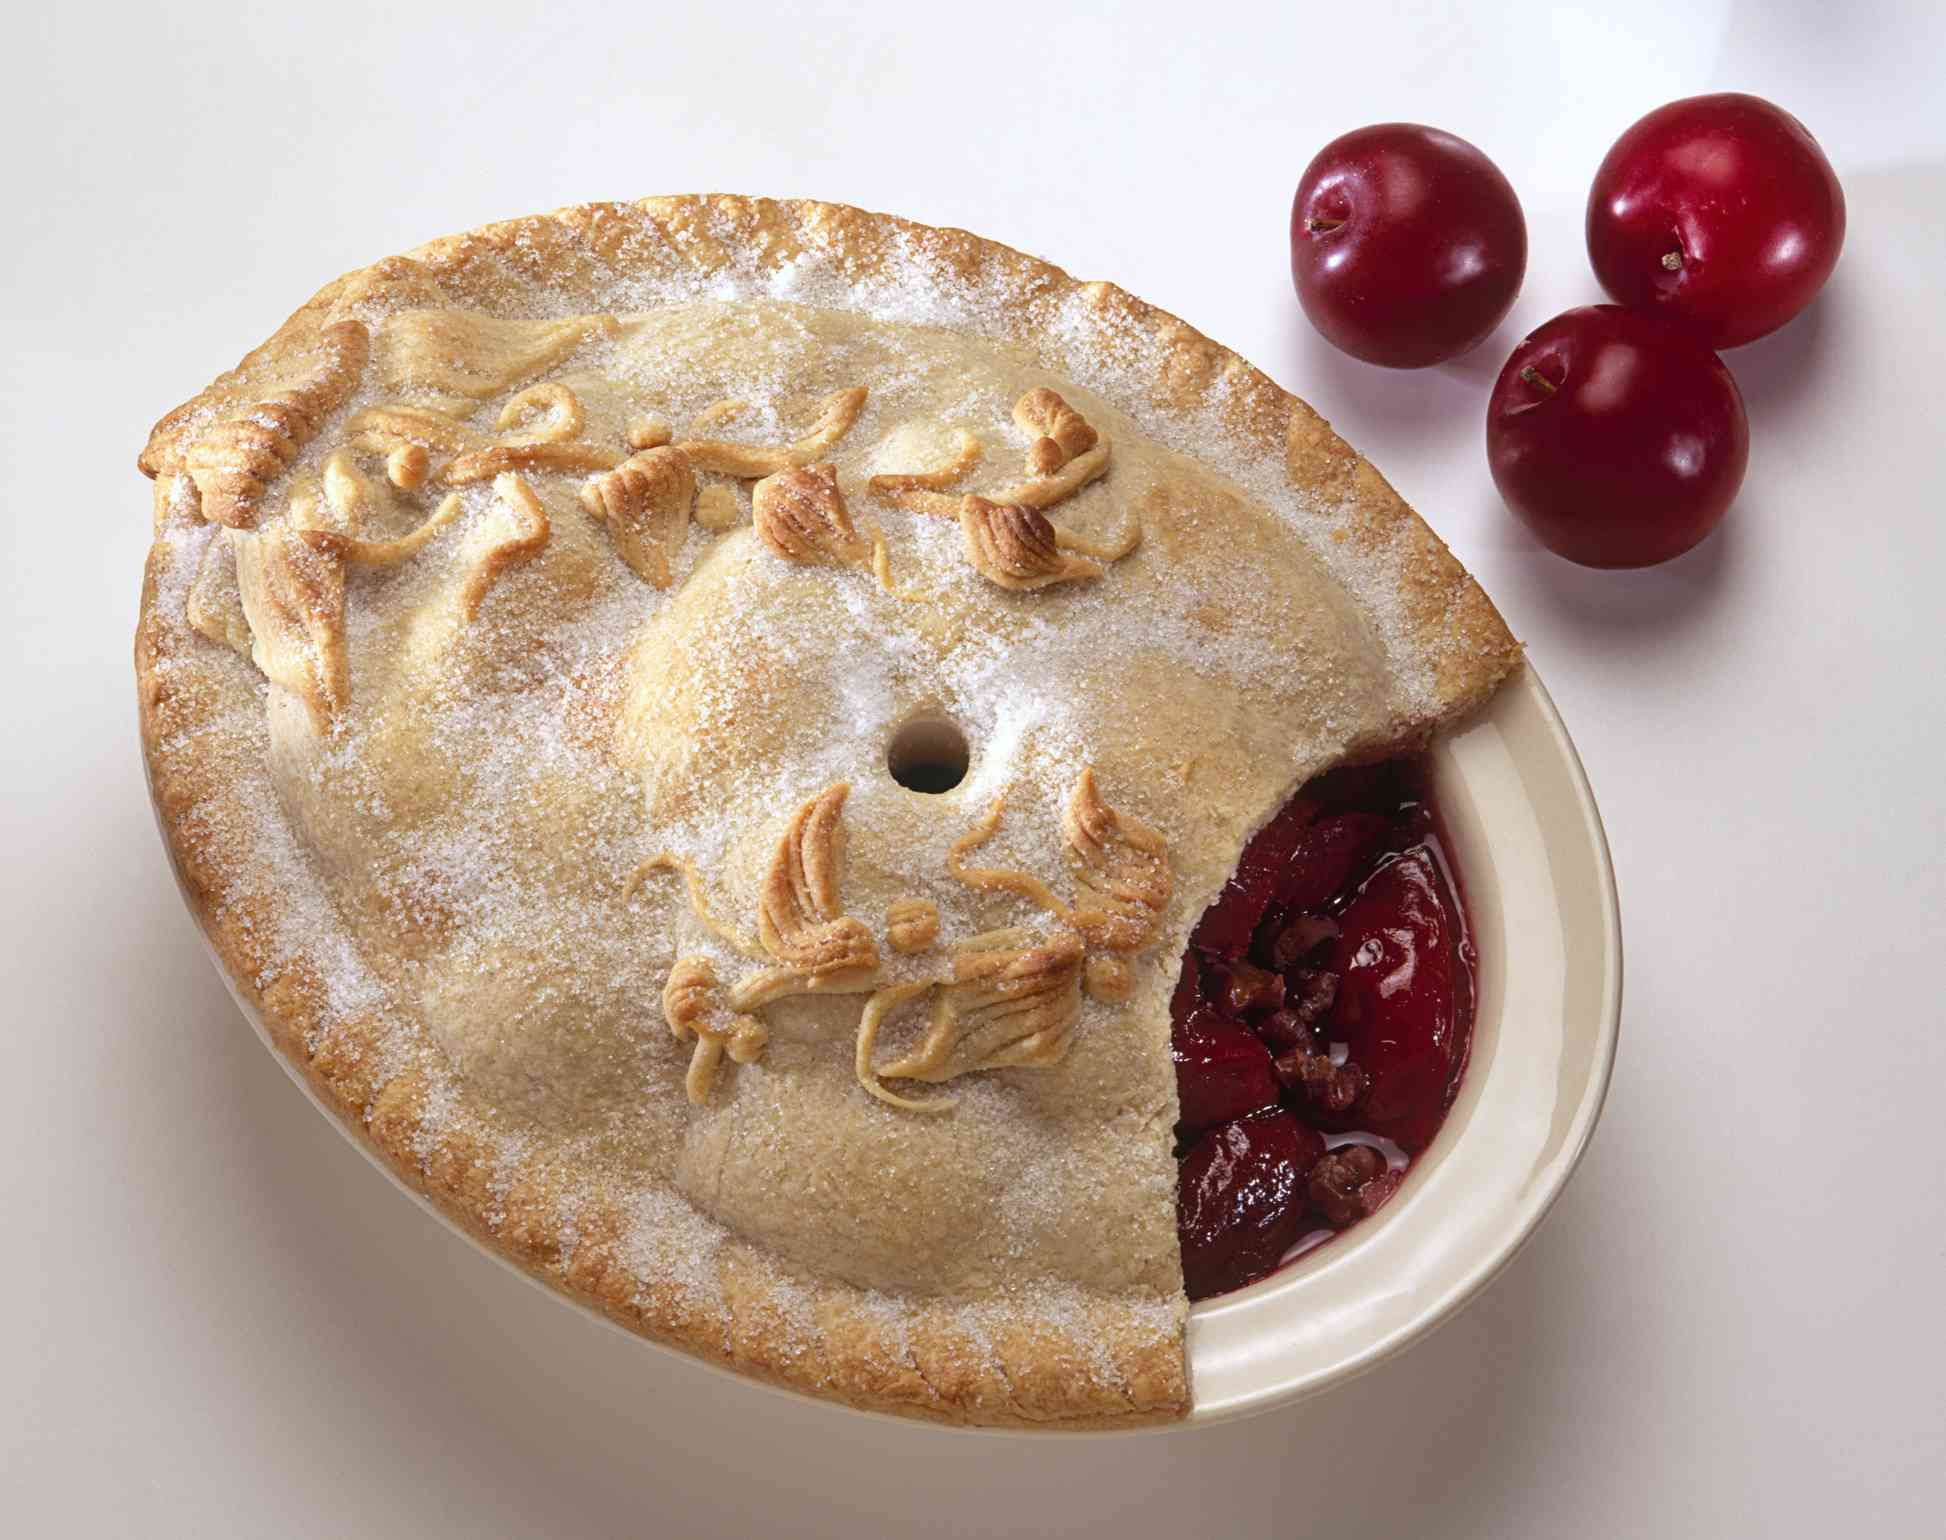 Plum pie with leafy decorated crust and fresh fruit